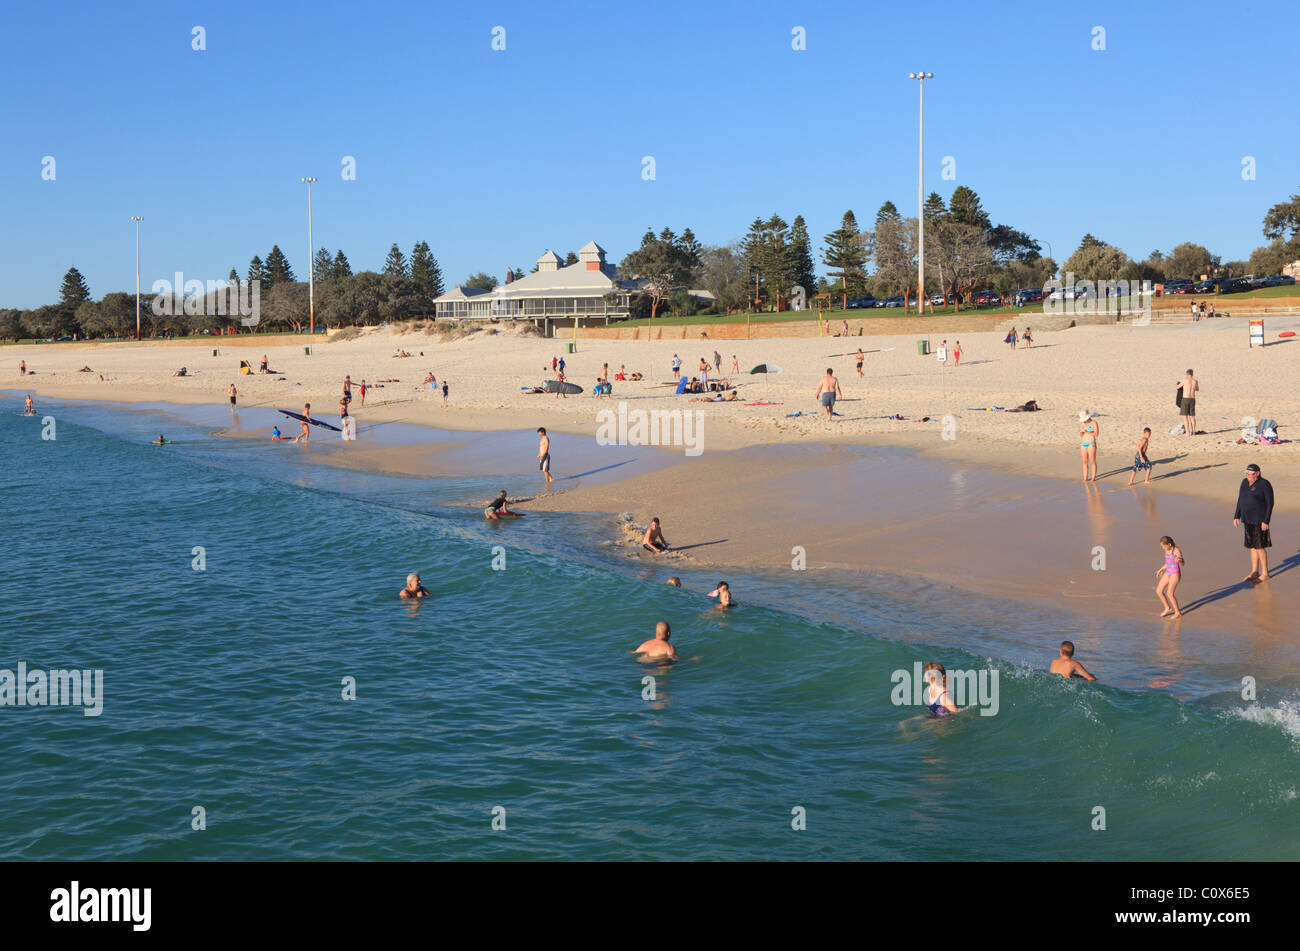 City Beach on a summer afternoon. Perth, Western Australia - Stock Image